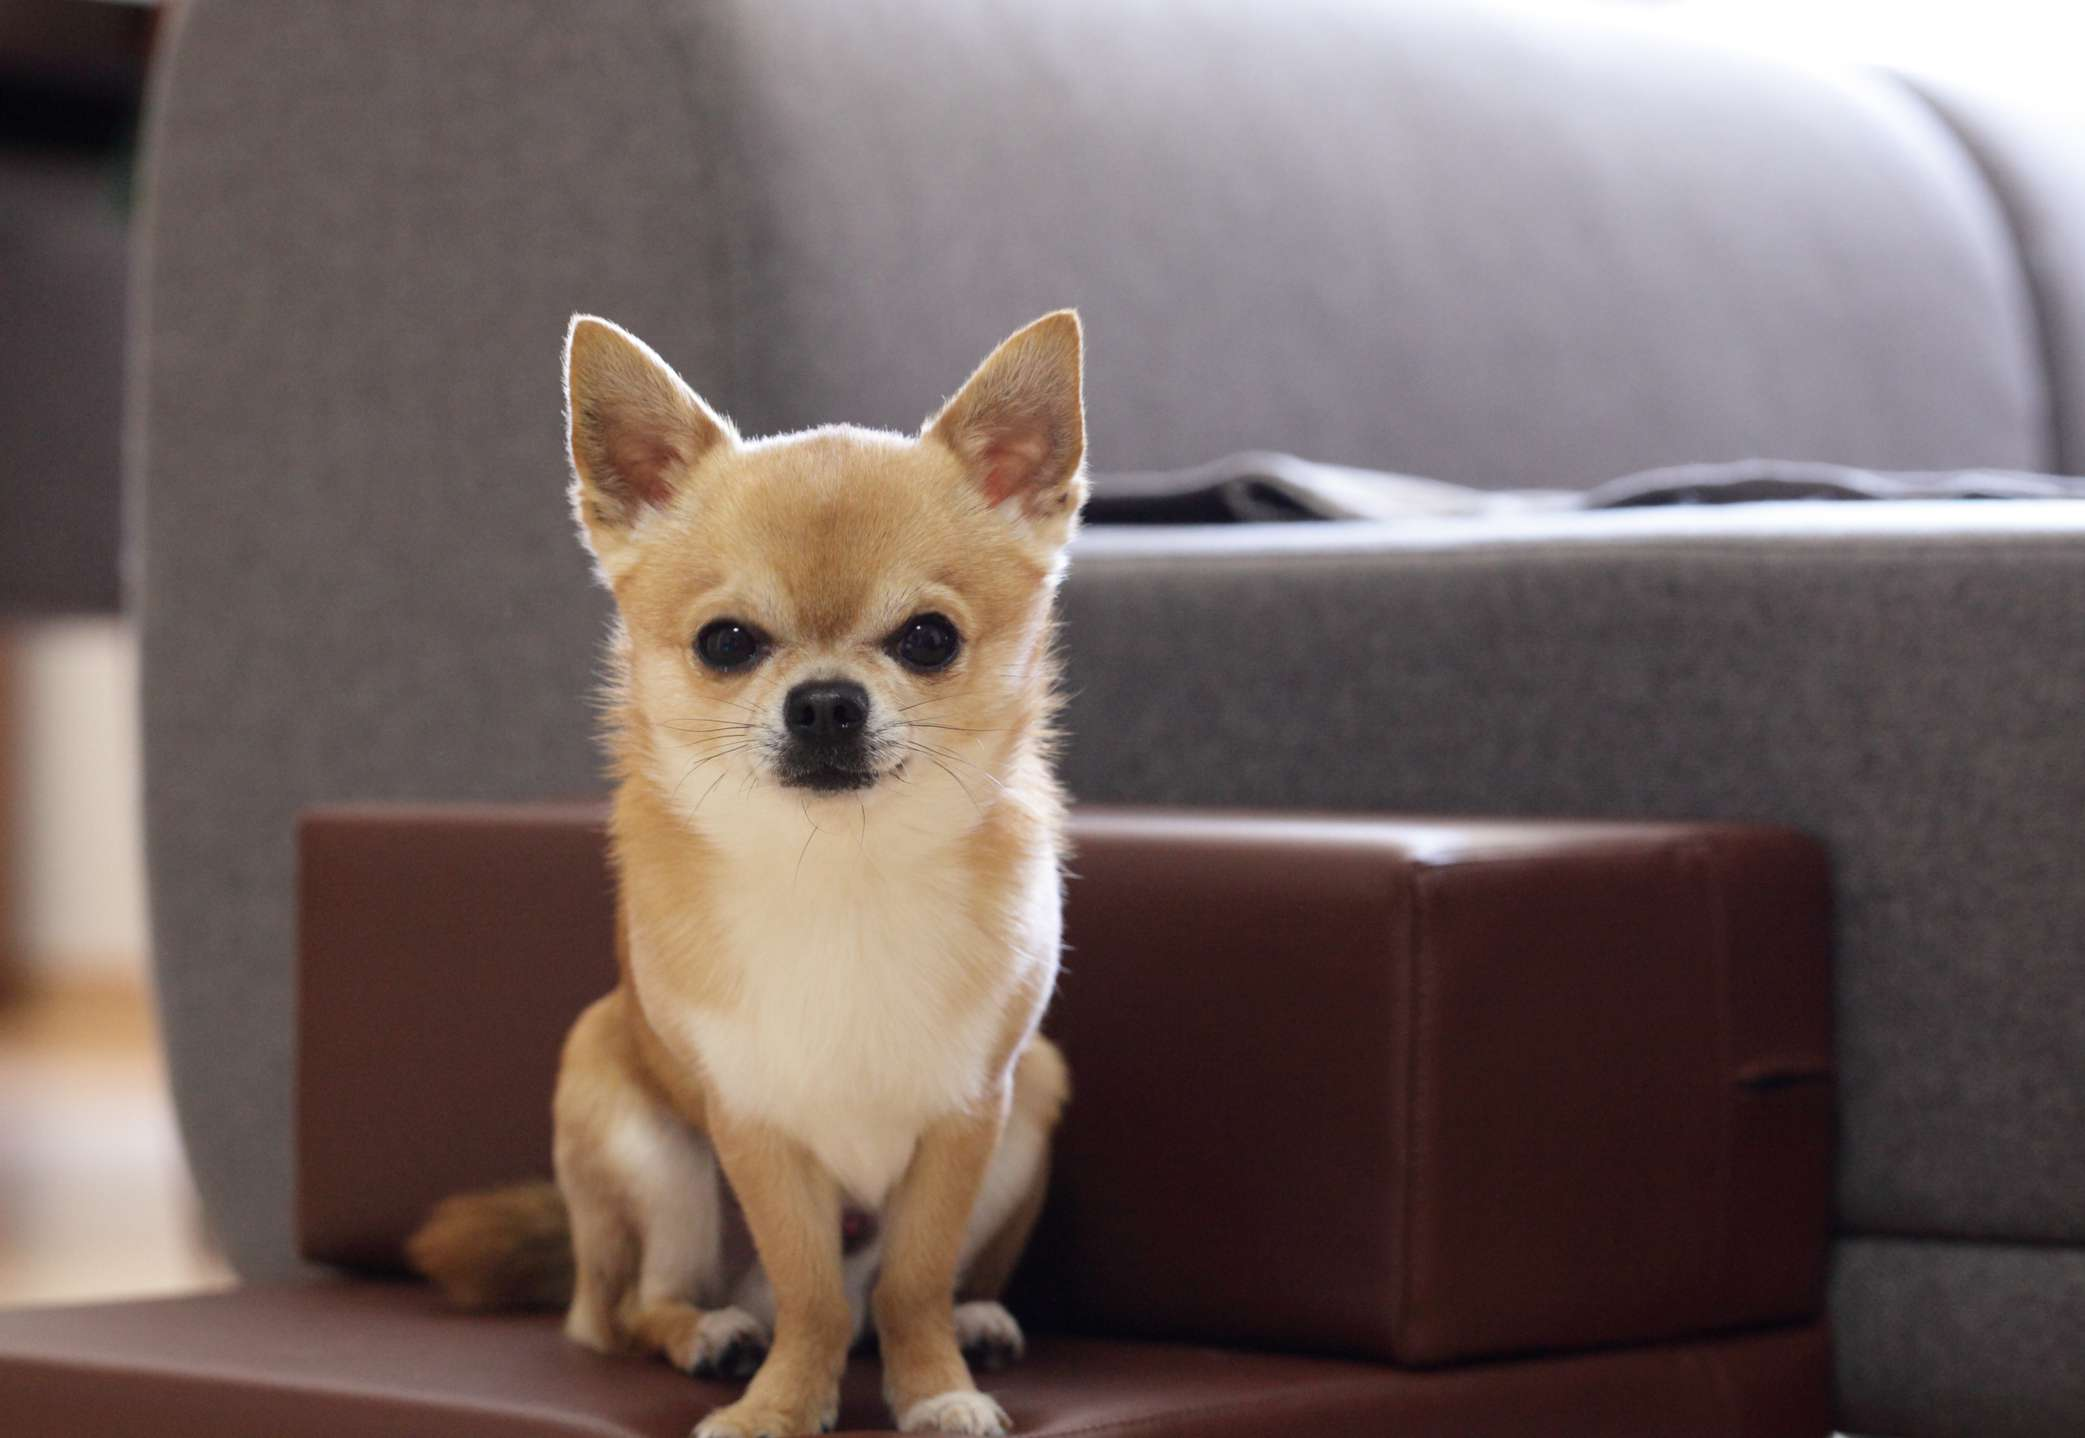 Long haired chihuahua sitting on chair next to couch.